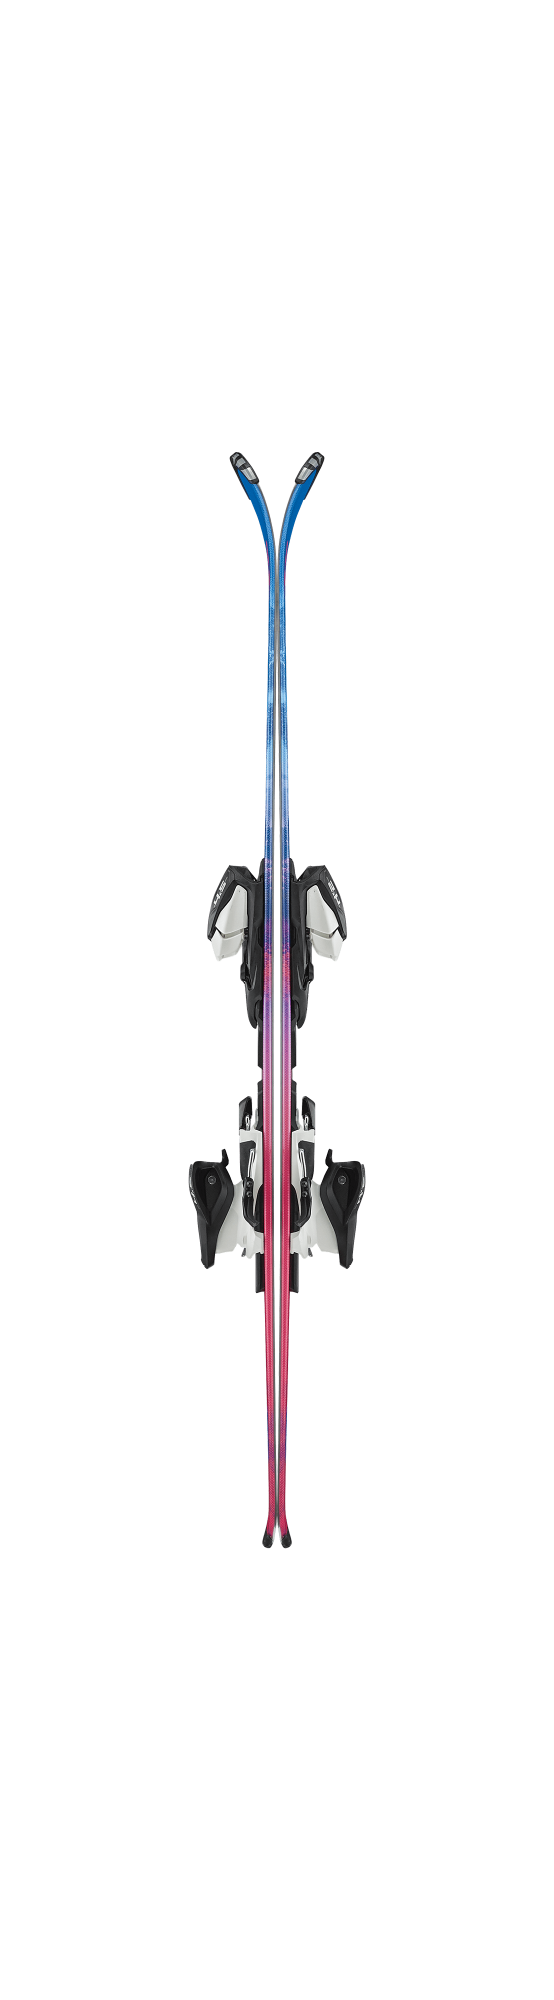 Nordica Youth Team J Skis With M4.5 FDT Bindings 2021